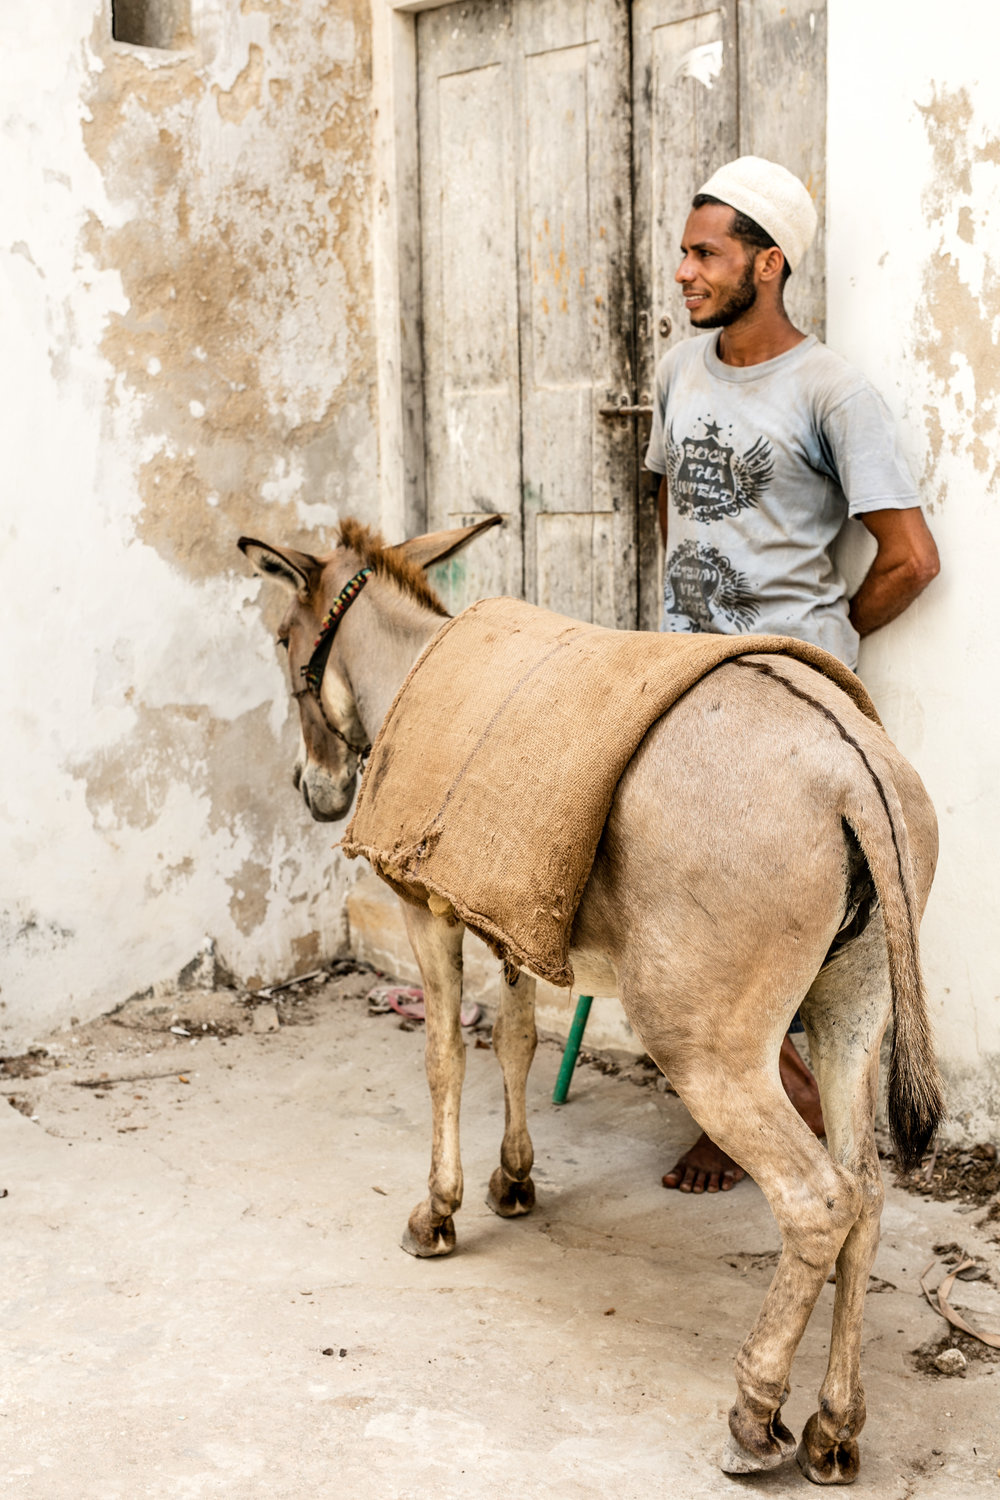 Khalid and his taxi service in Lamu Town